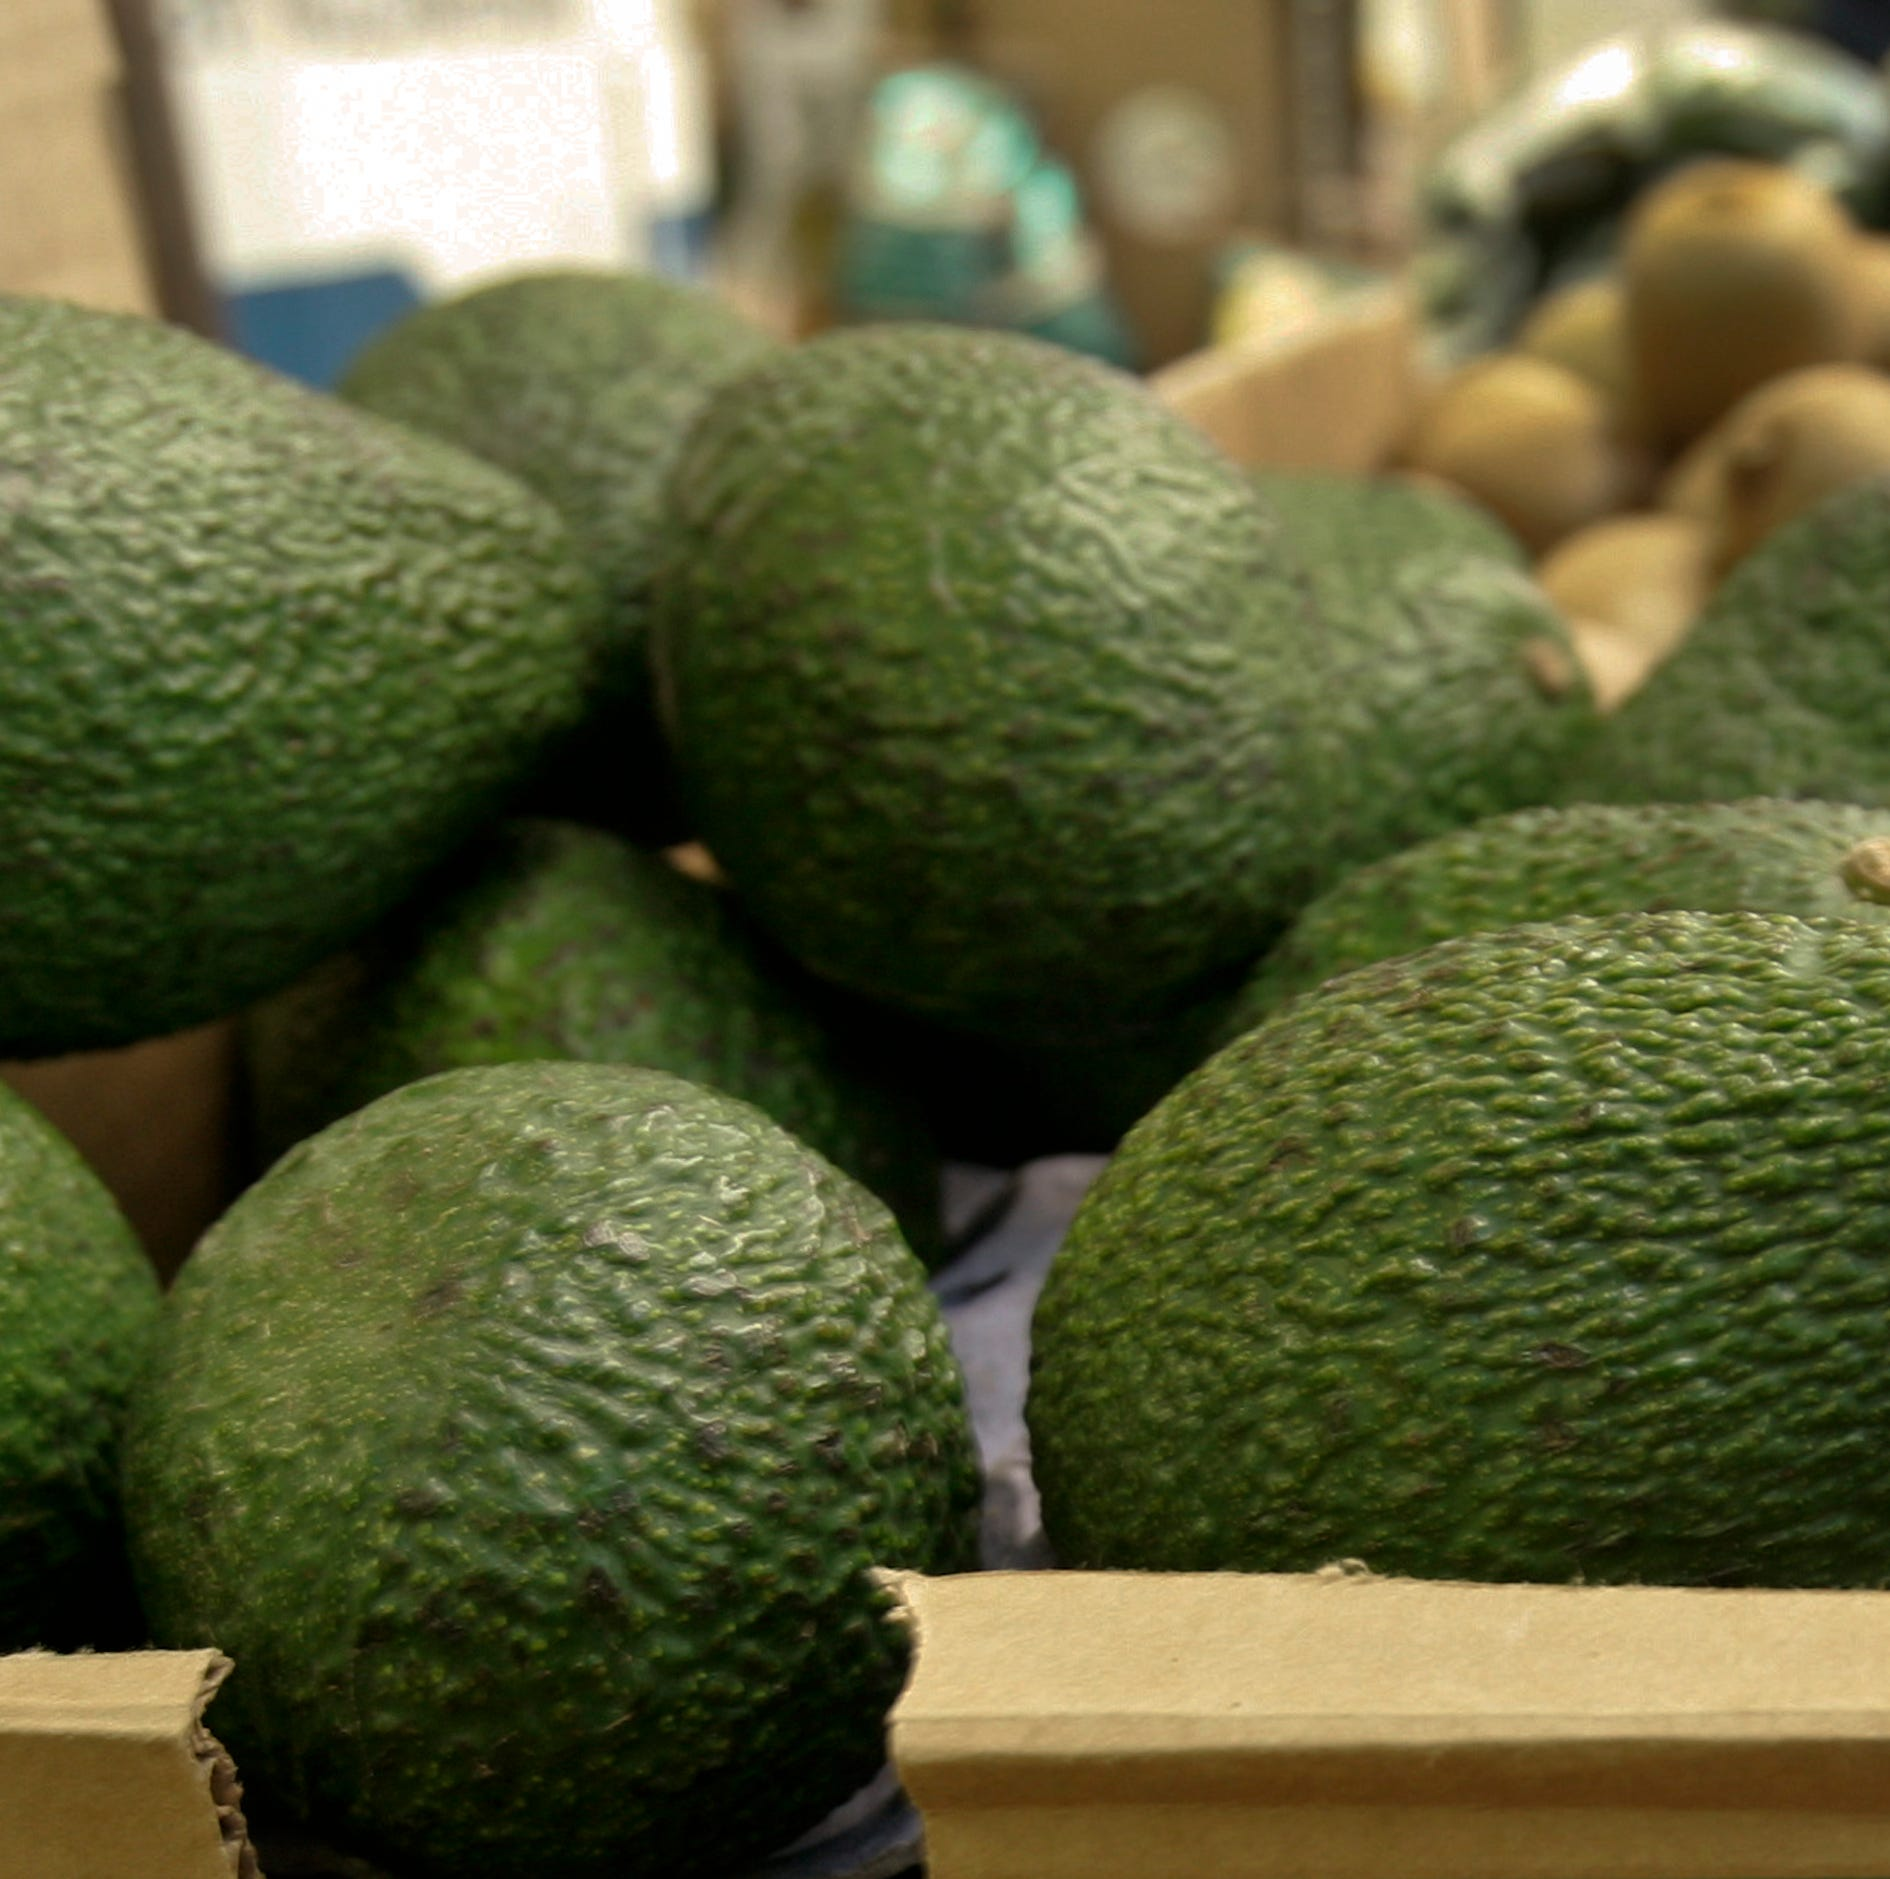 California grower recalls avocados sold in Arizona over possible listeria contamination